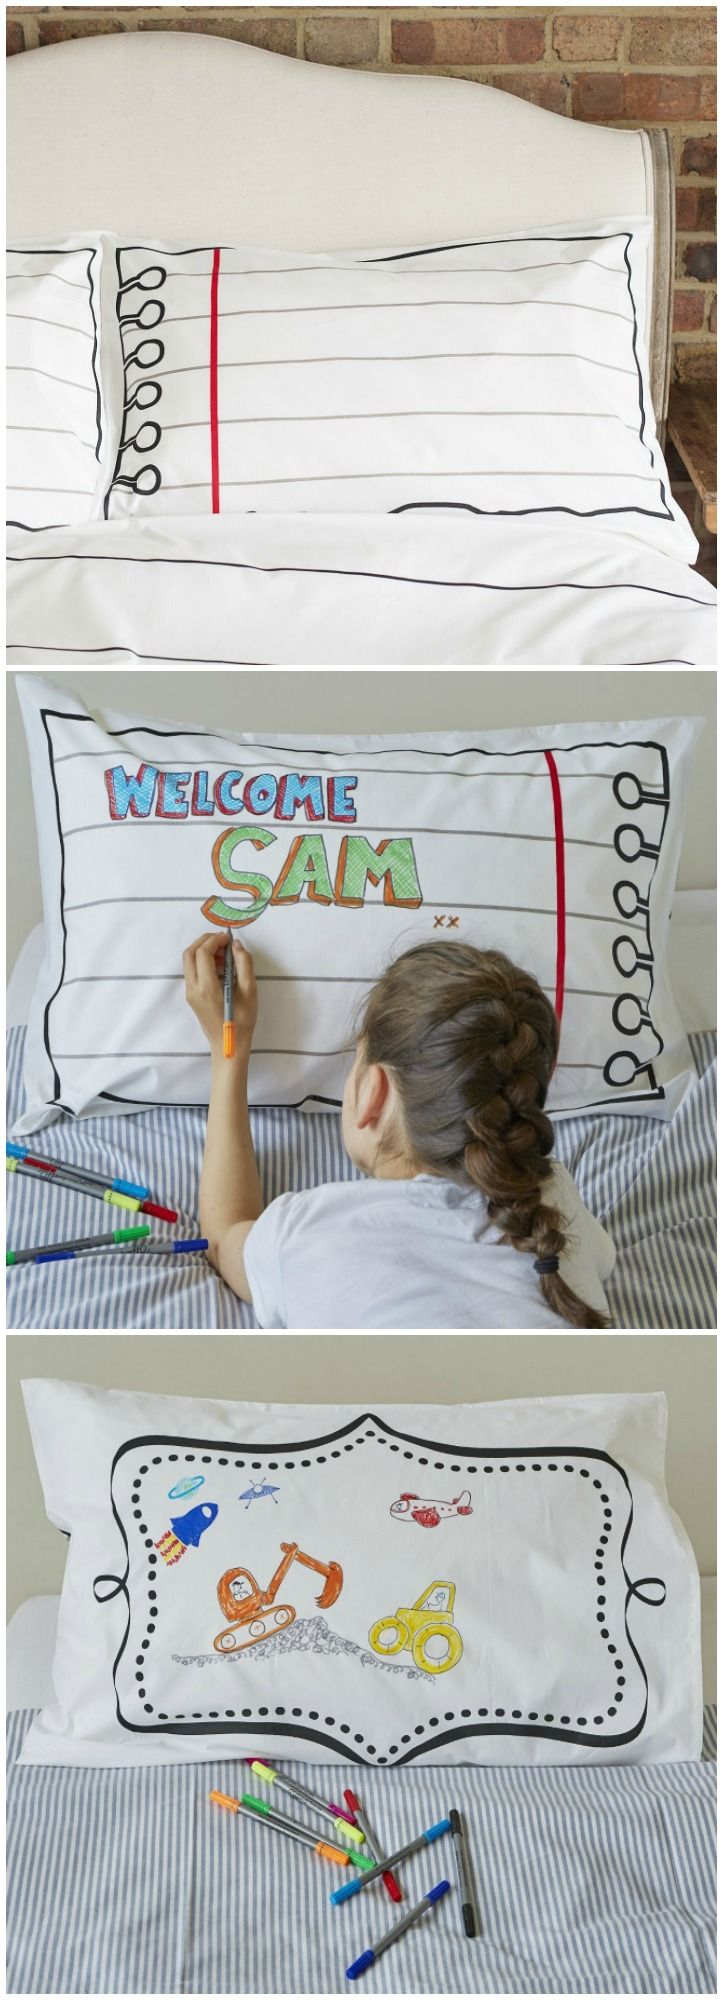 12 best GS Pillowcases - Coloring images on Pinterest | Cushion ...